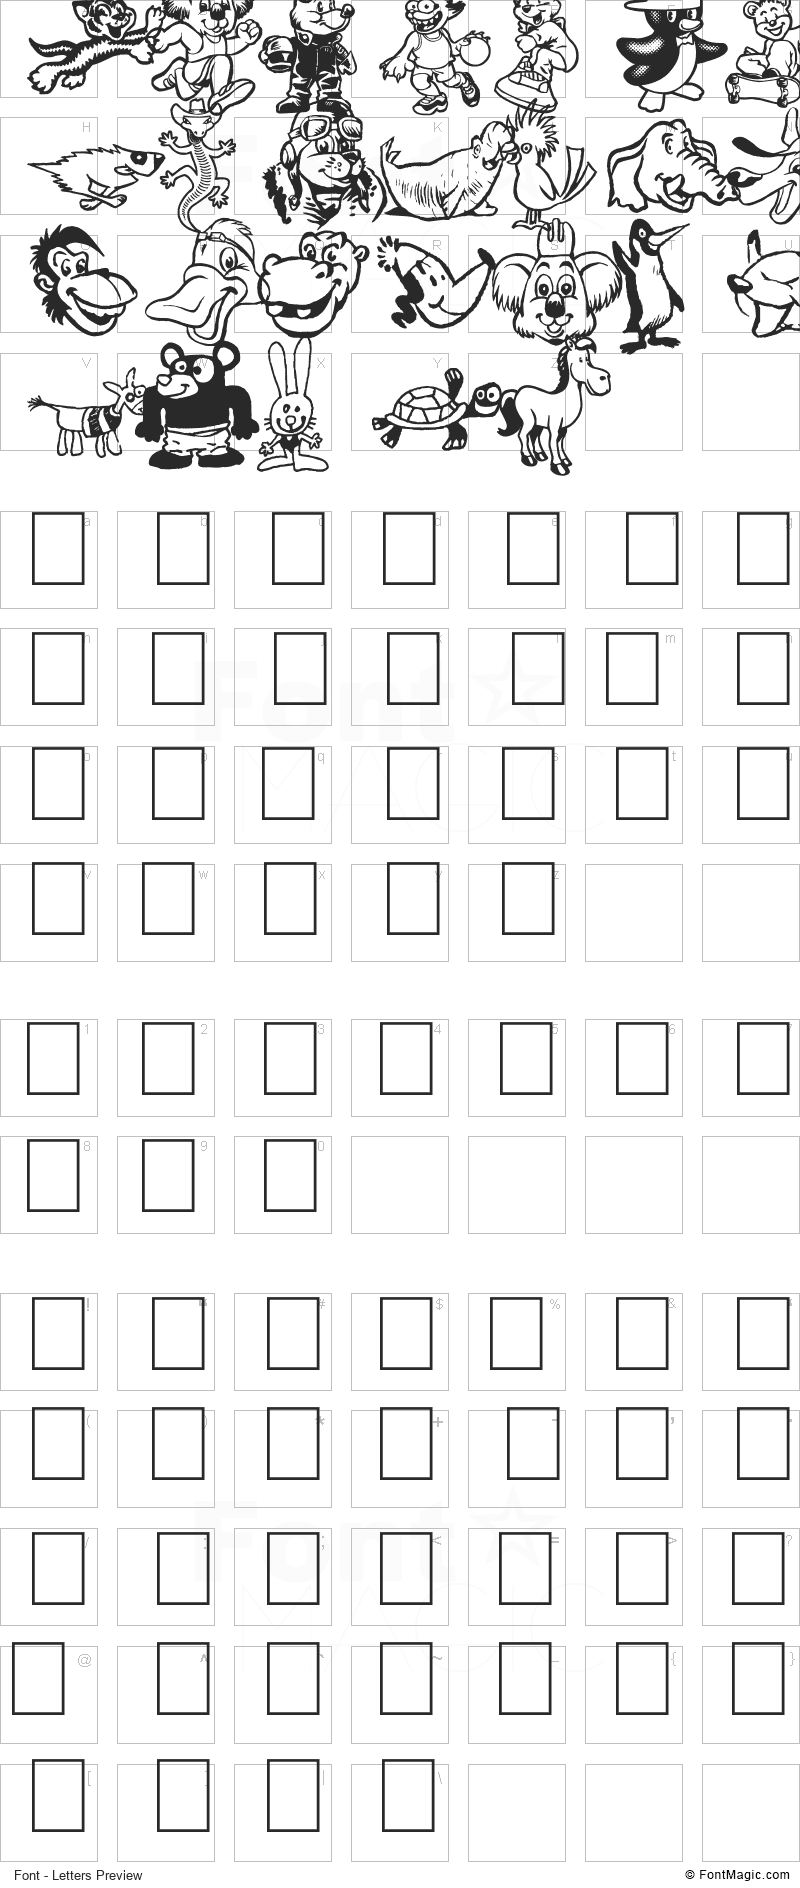 Toonimals 2 Font - All Latters Preview Chart